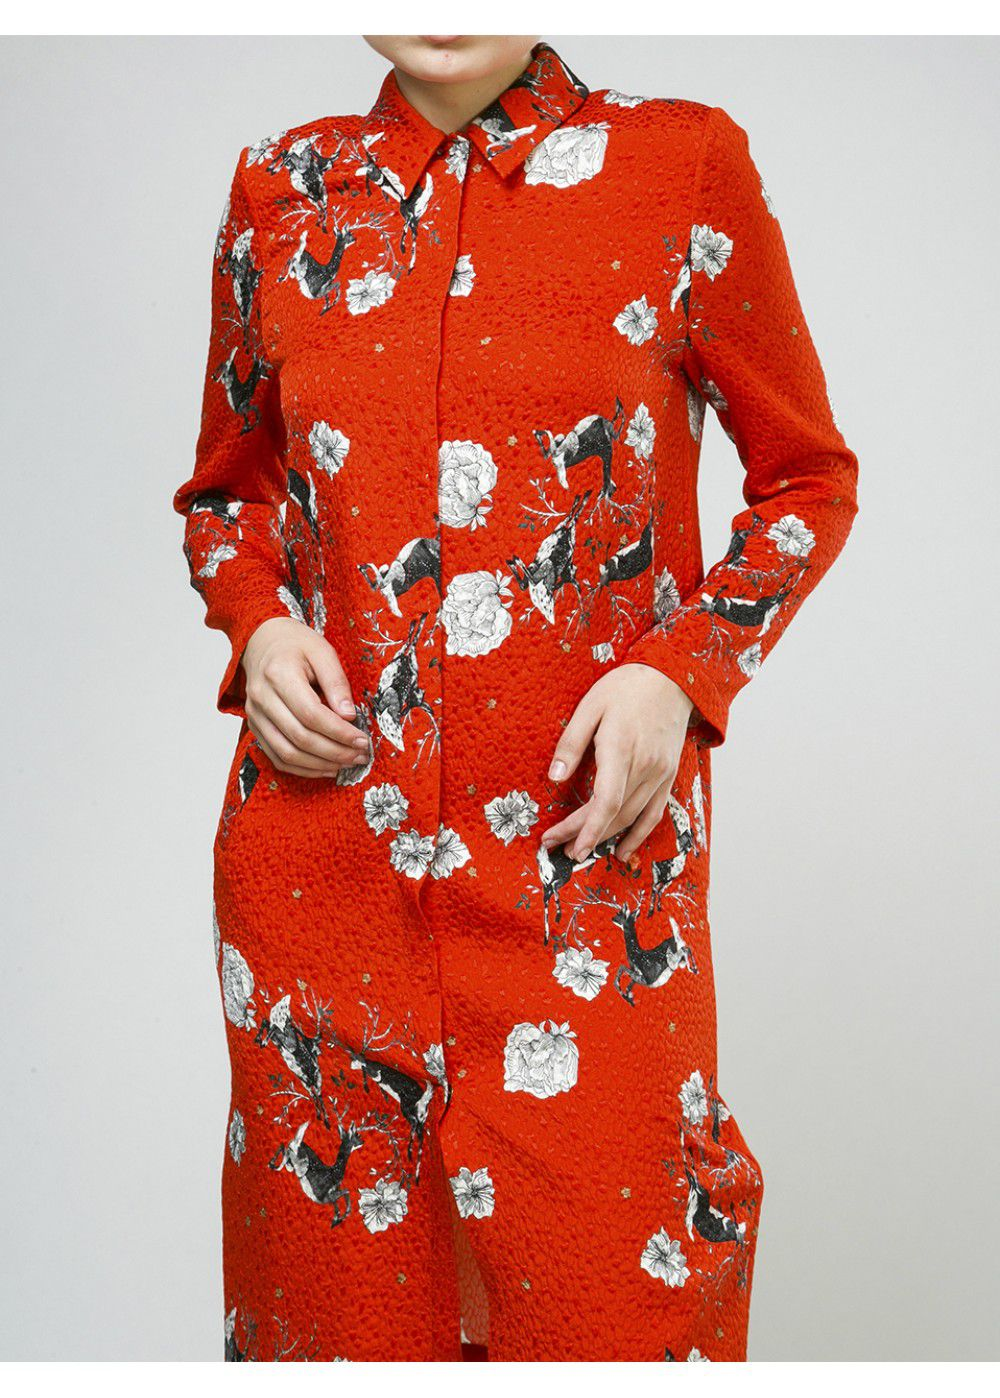 Alena Akhmadullina Shirt-Dress with Deer Print